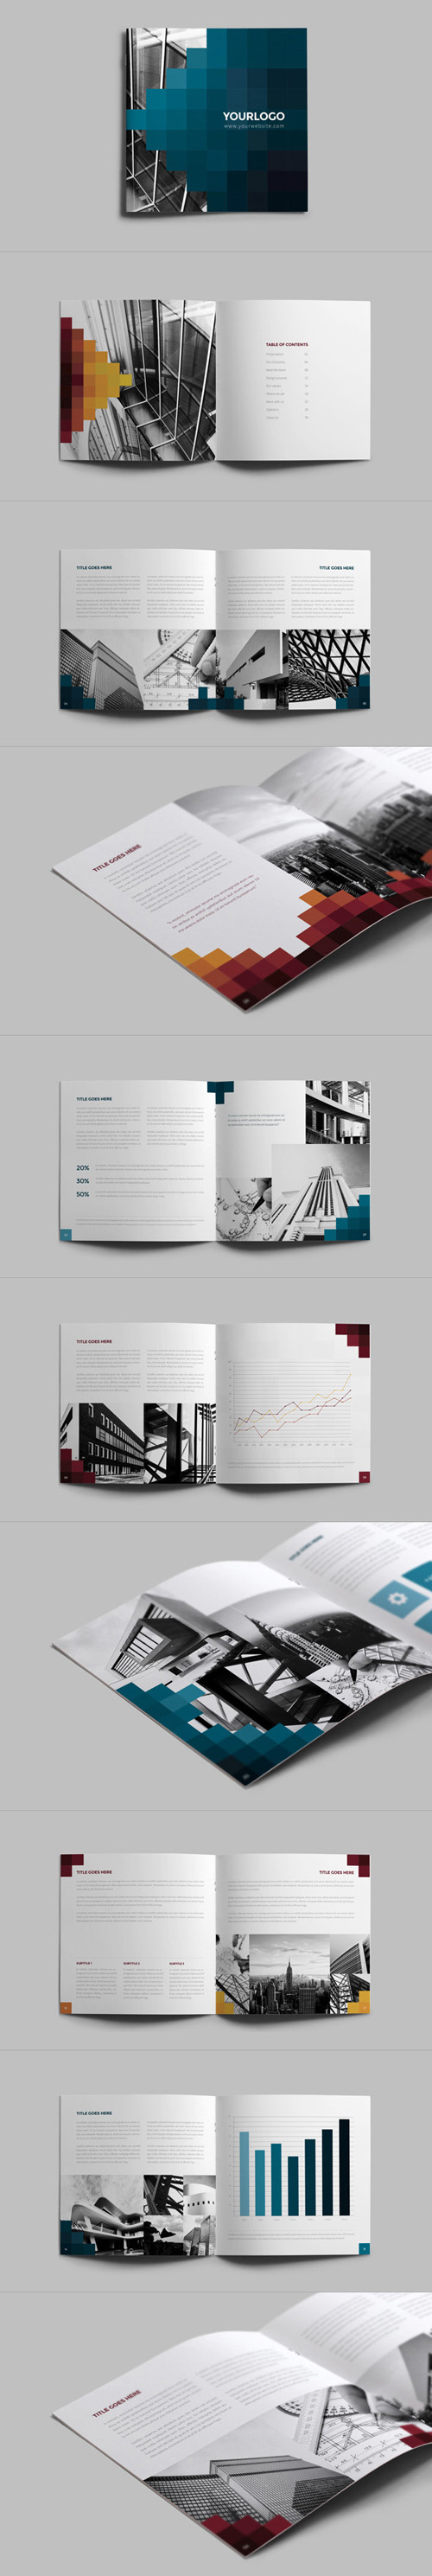 Pixels Square Brochure